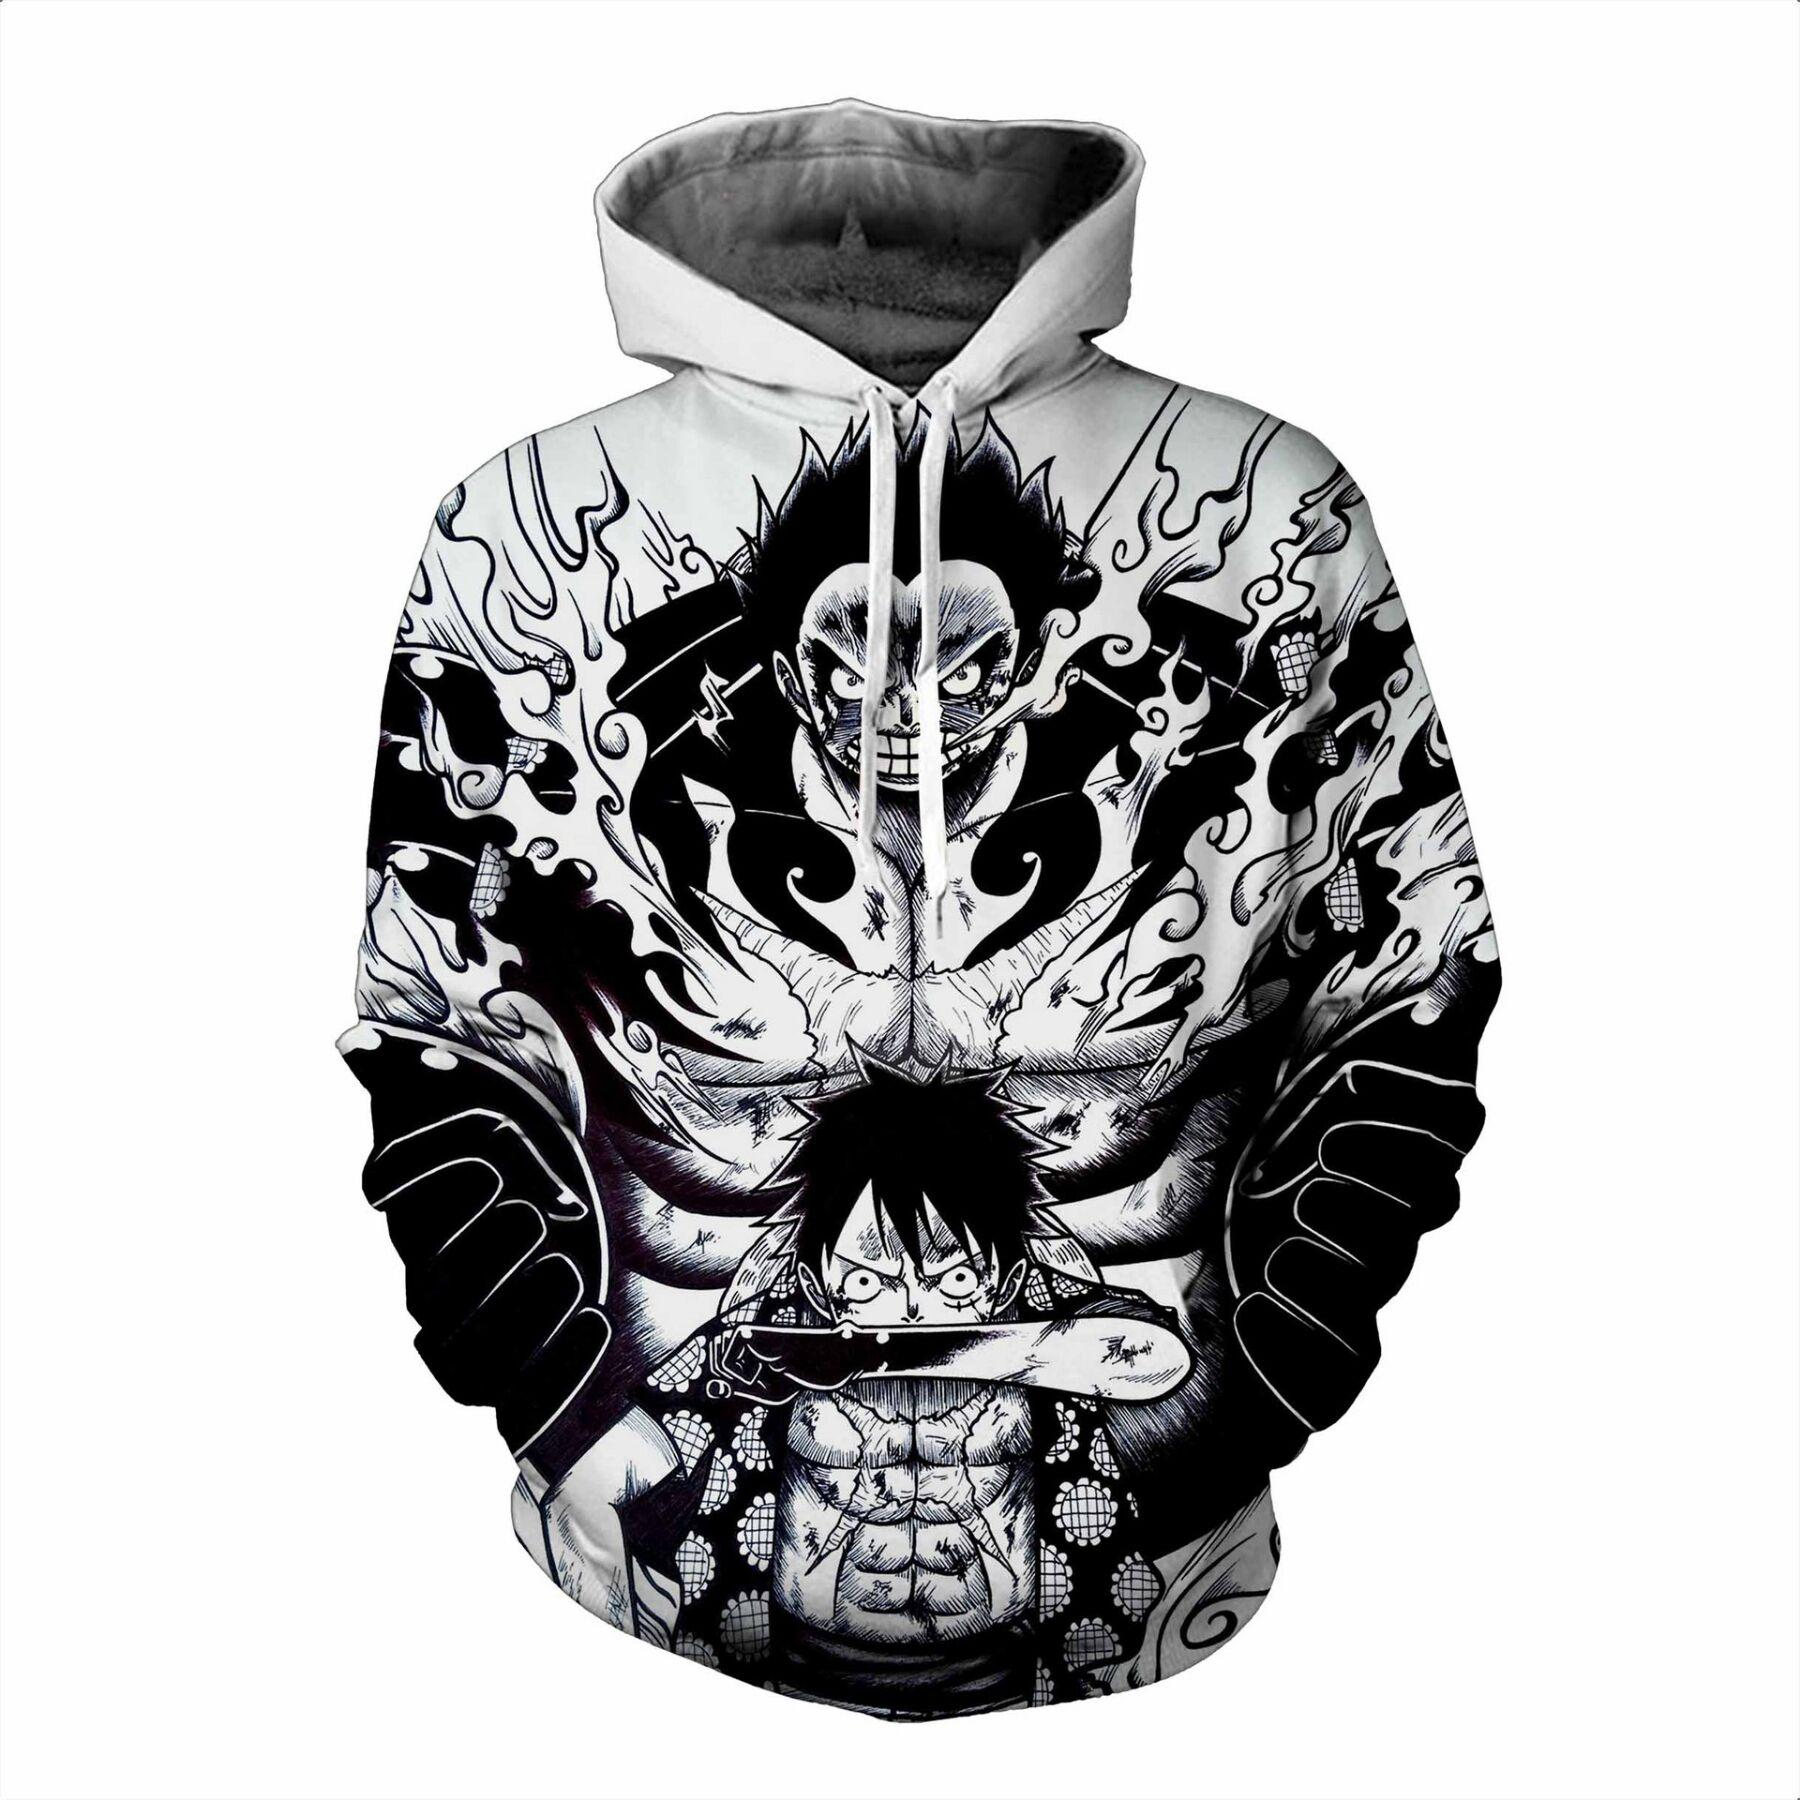 Luffy Jackets Cardigan Tops Men's Clothing Anime Hoodies One Piece 3d Printed Hooded Hoodies Sweatshirts For Men Spring Antumn Zipper Monkey D